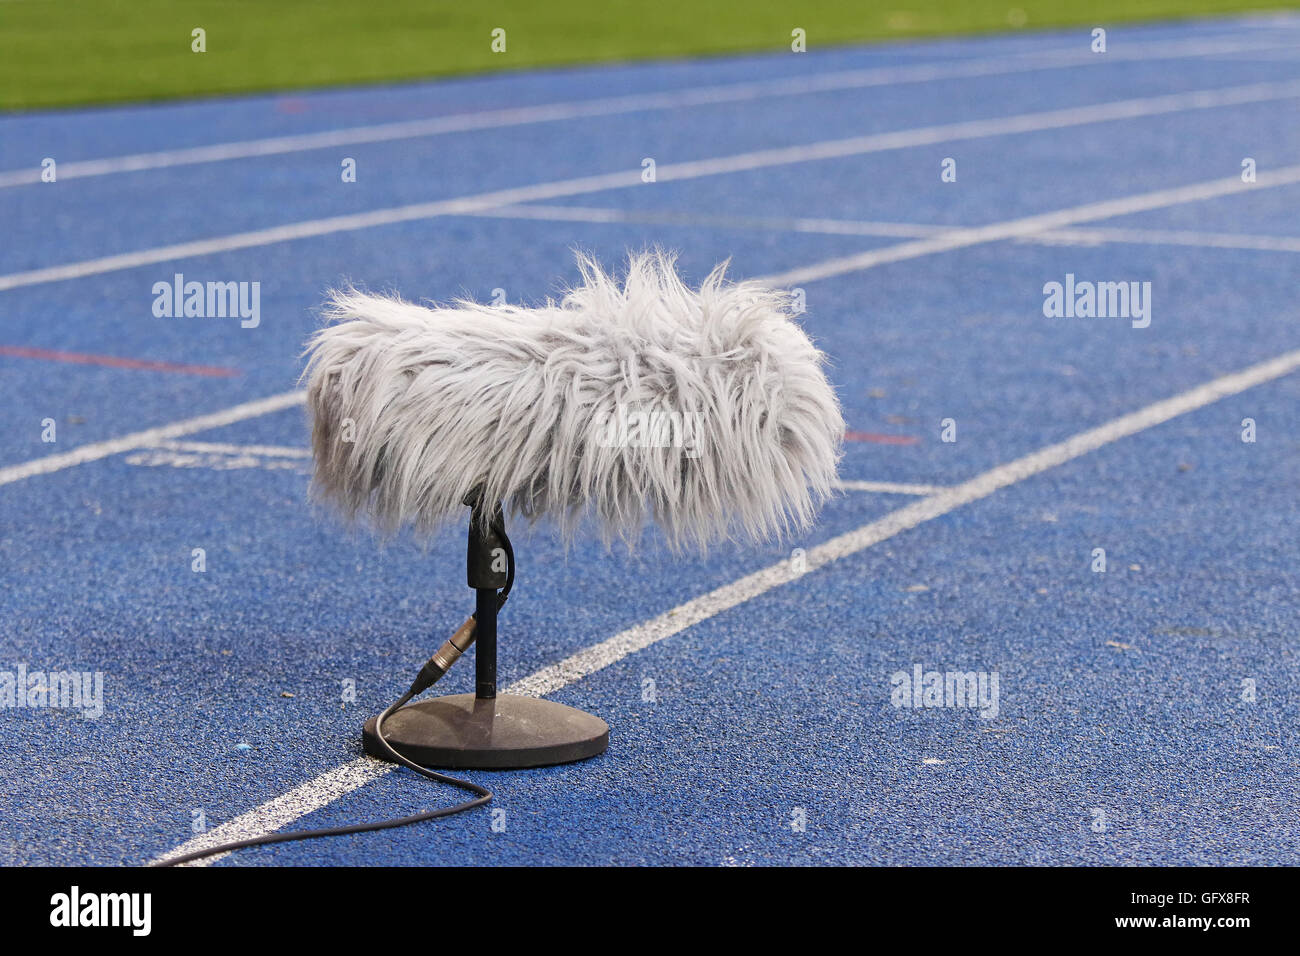 Big and furry professional sport microphone near the football field - Stock Image